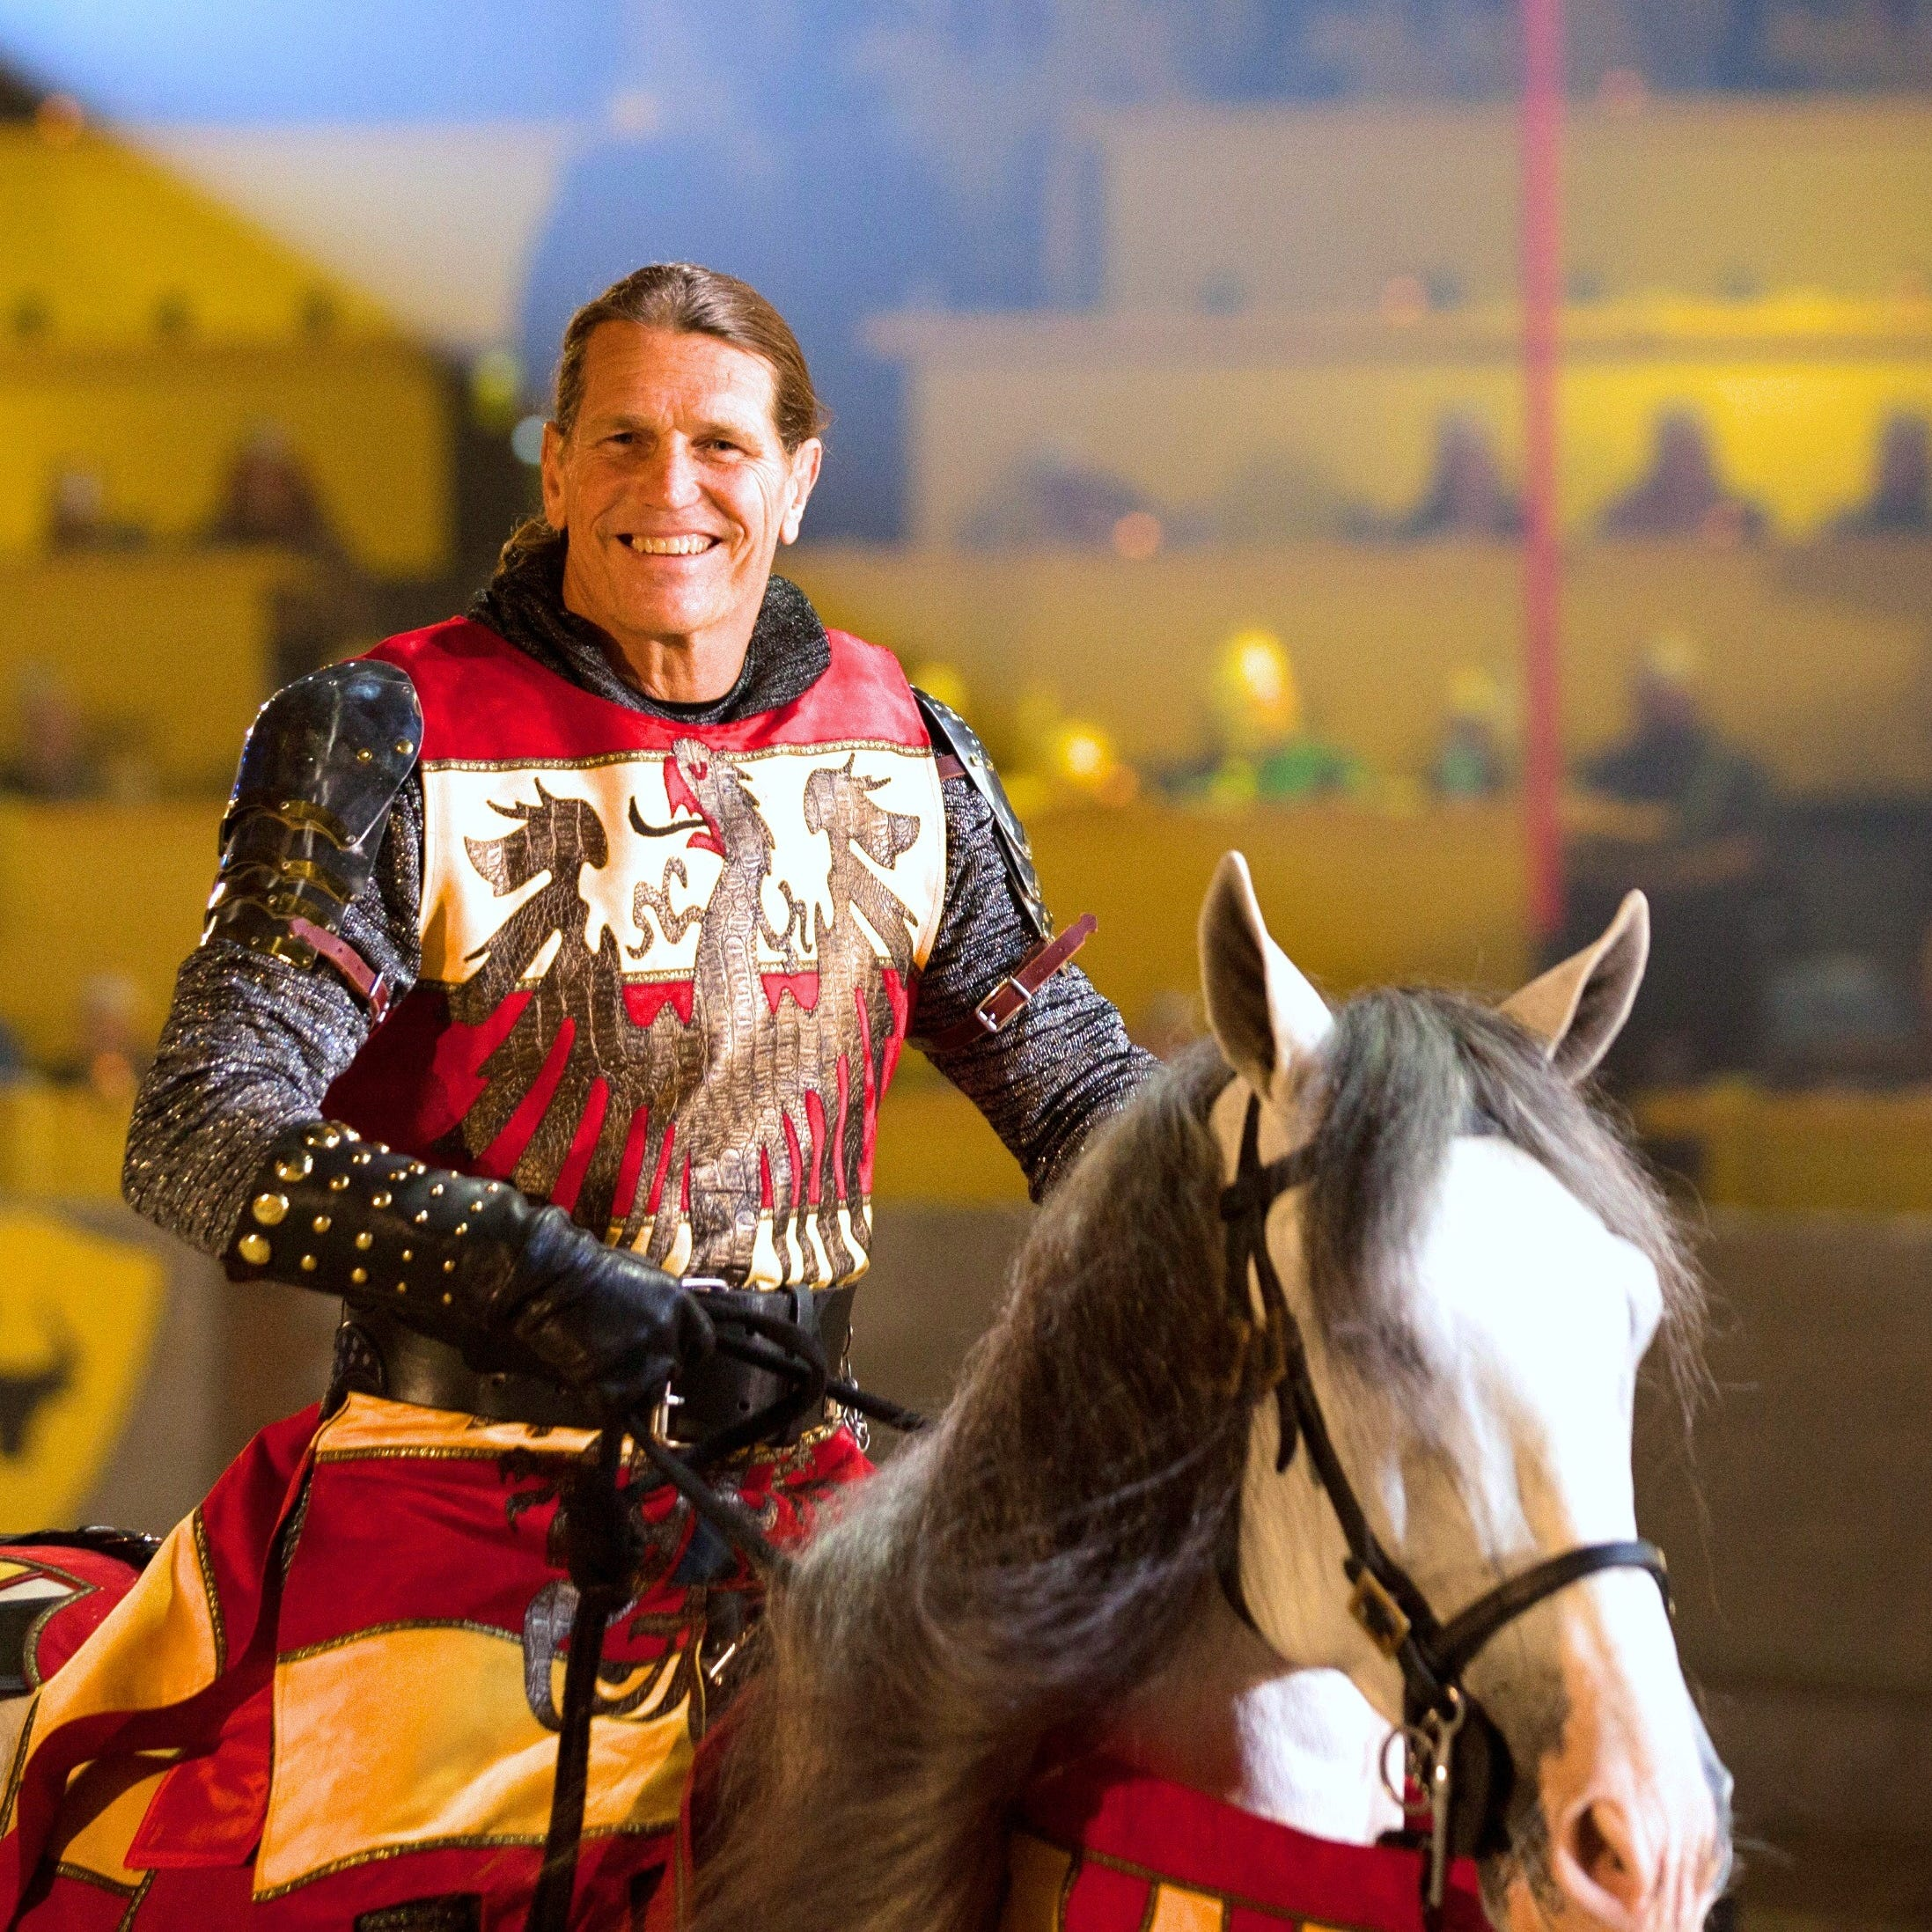 Hate your job? Medieval Times is hiring a queen and a lord chancellor in Scottsdale